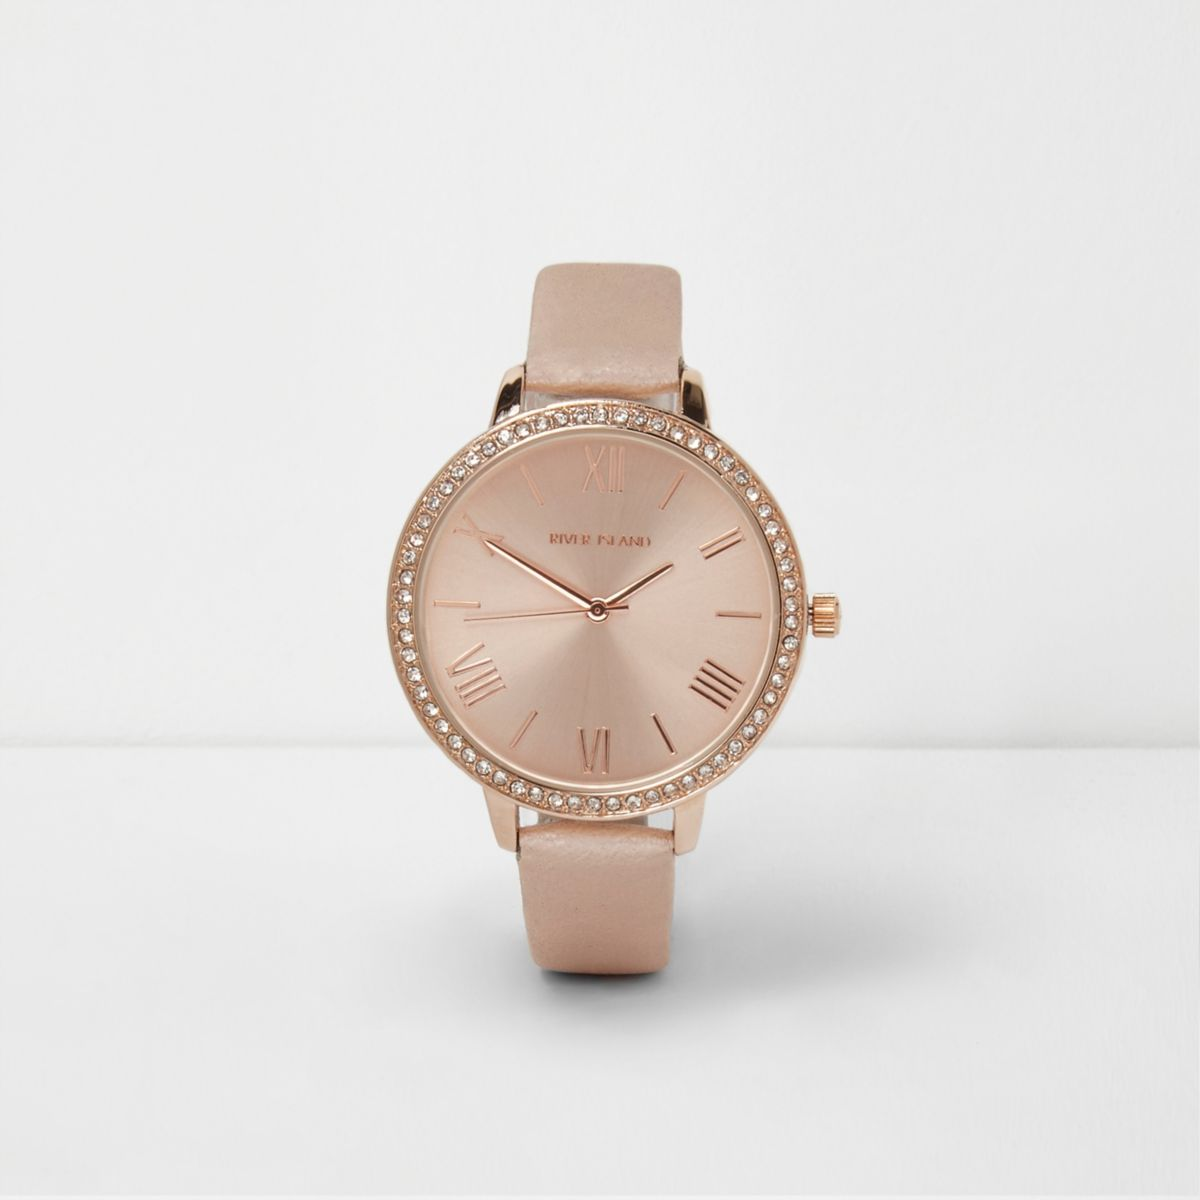 Green and rose gold tone strap watch